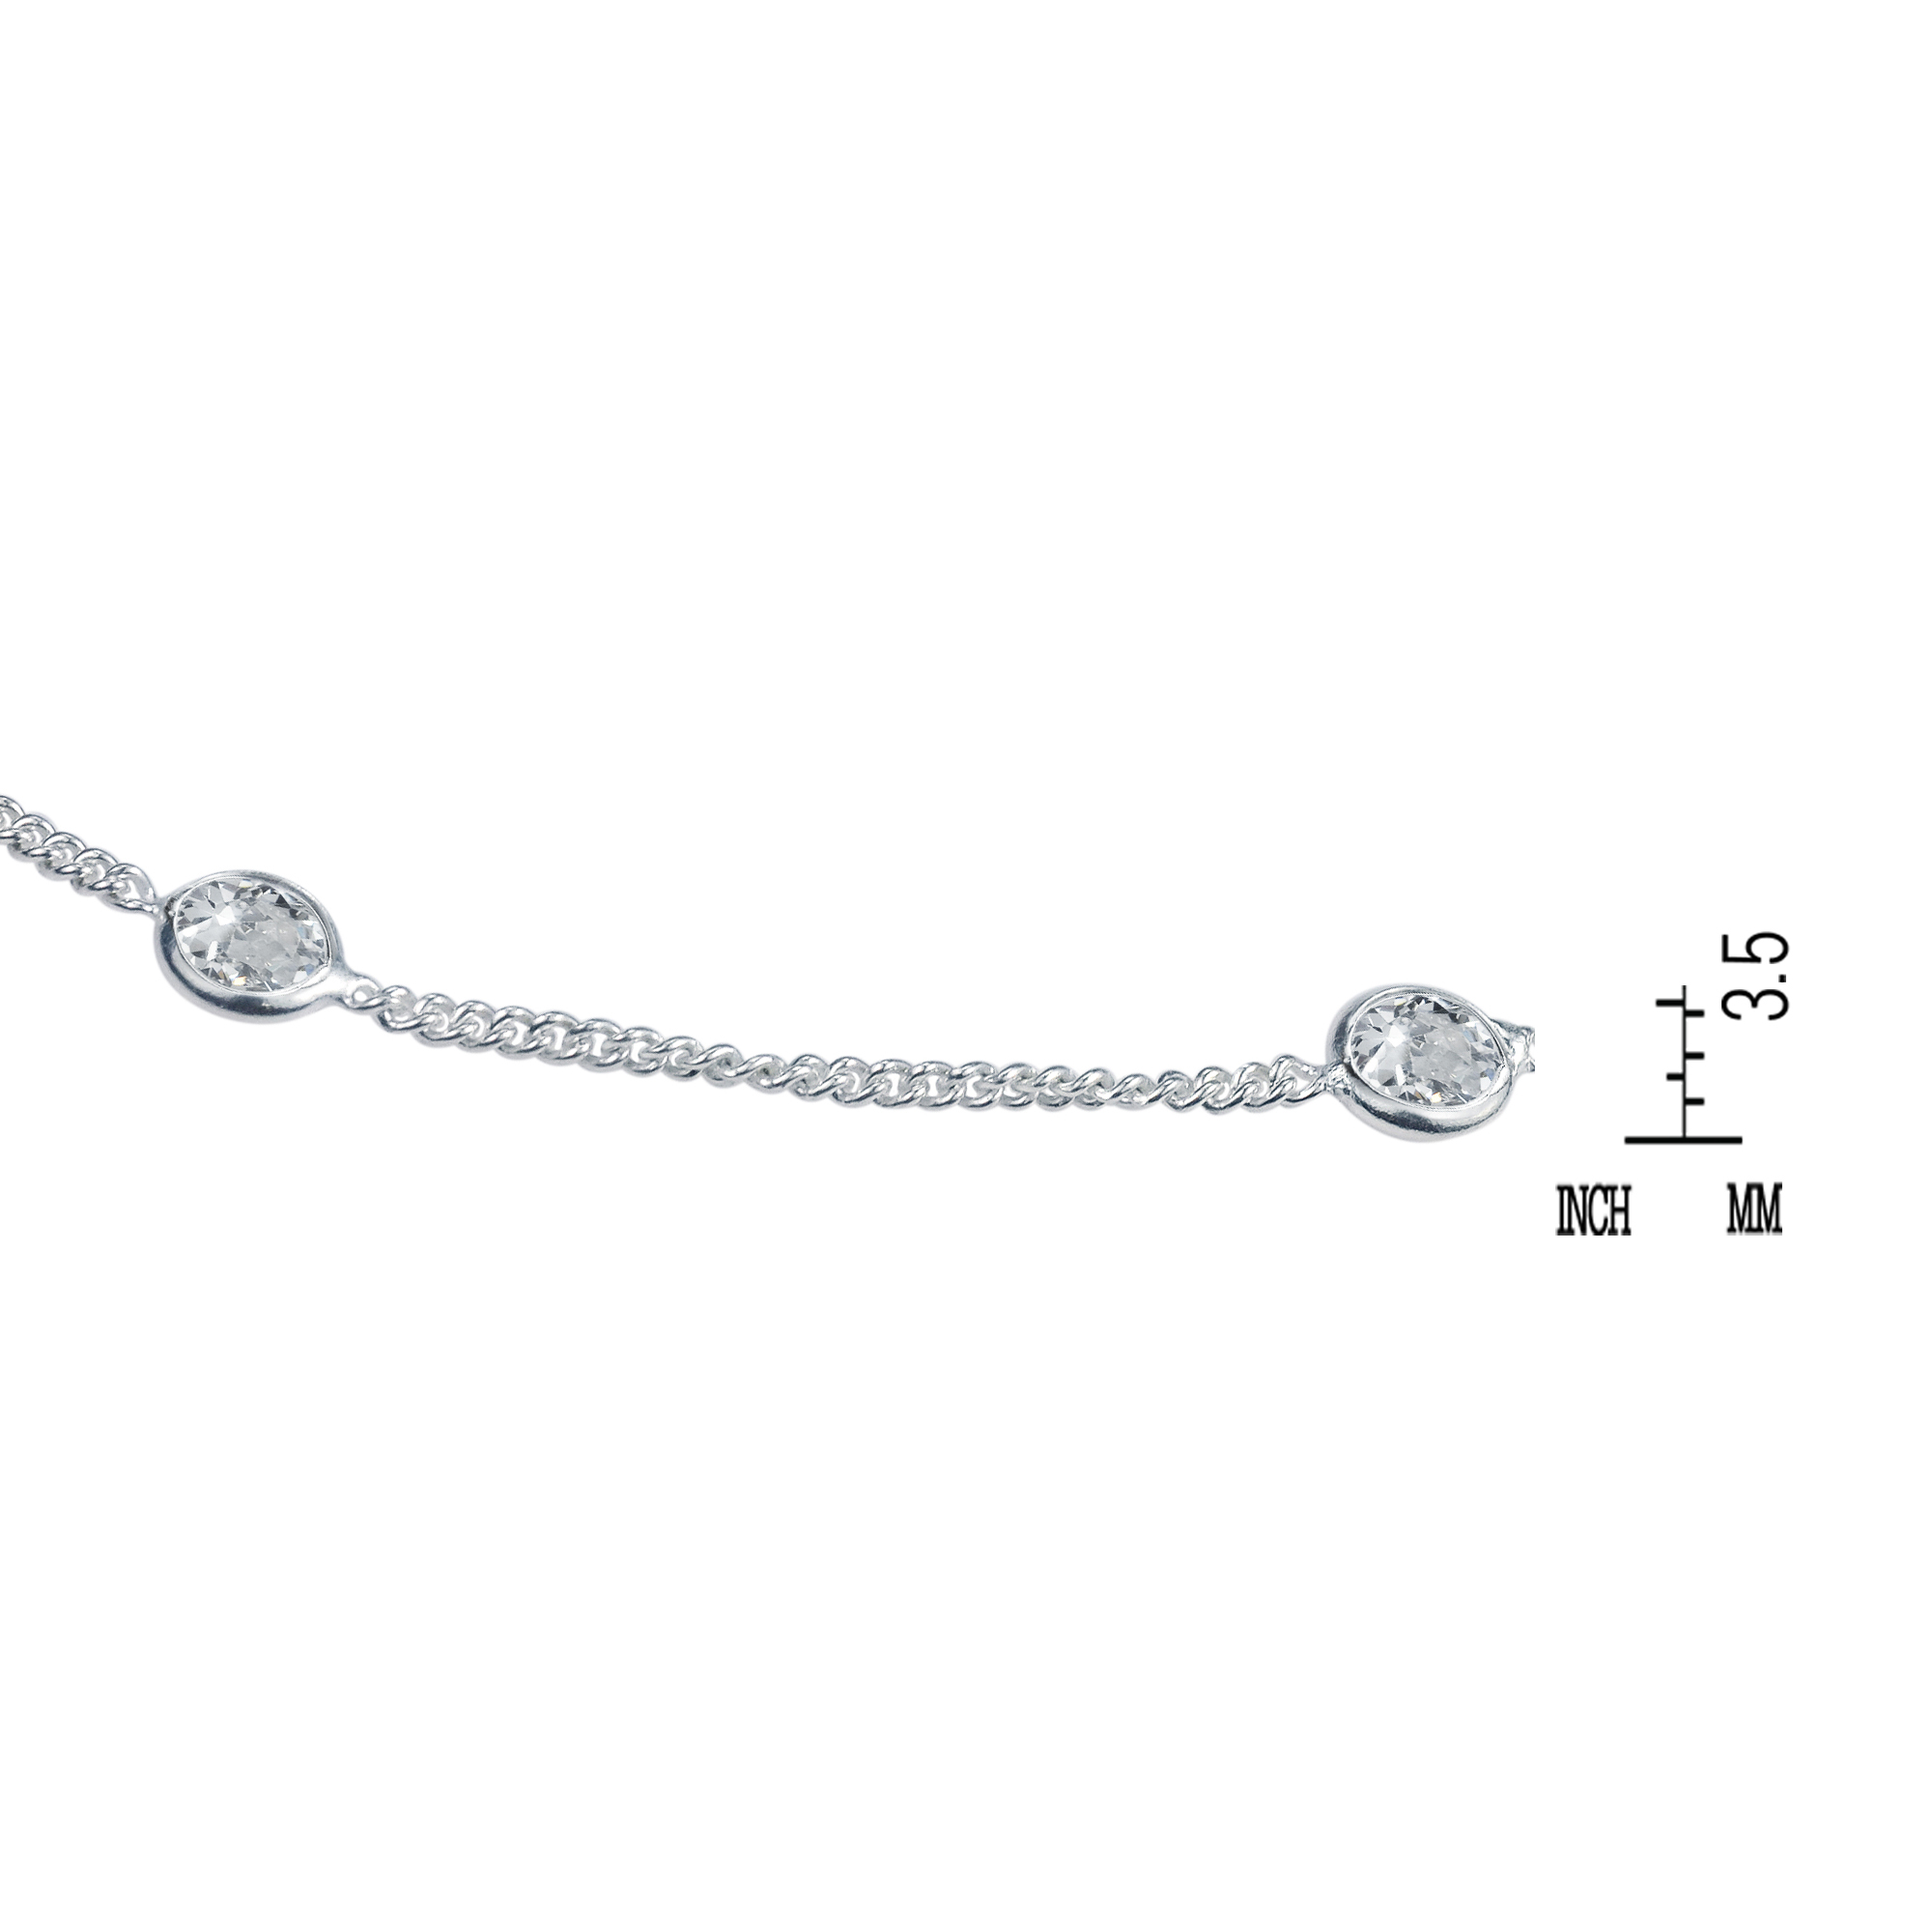 sterling beautiful ca white zirconia round cz details fine features accents jewelry with aeravida link anklet statement make cubic a from thailand wt silver crafted products this anklets cute